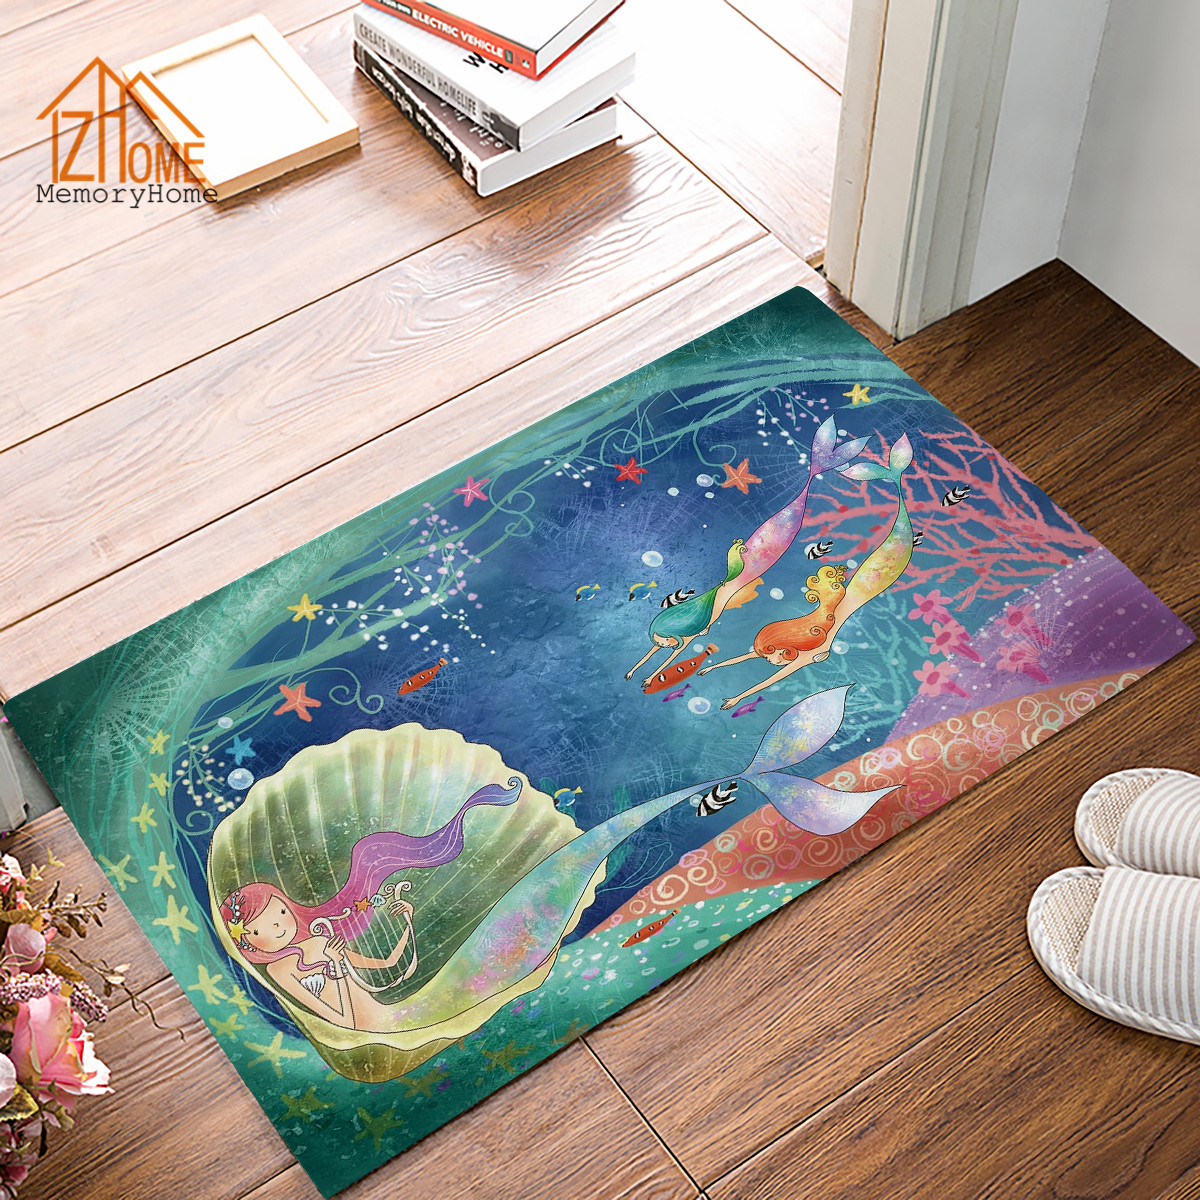 Memory Home Cartoon Mermaid Starfish Fish In The Sea Doormat Non ...